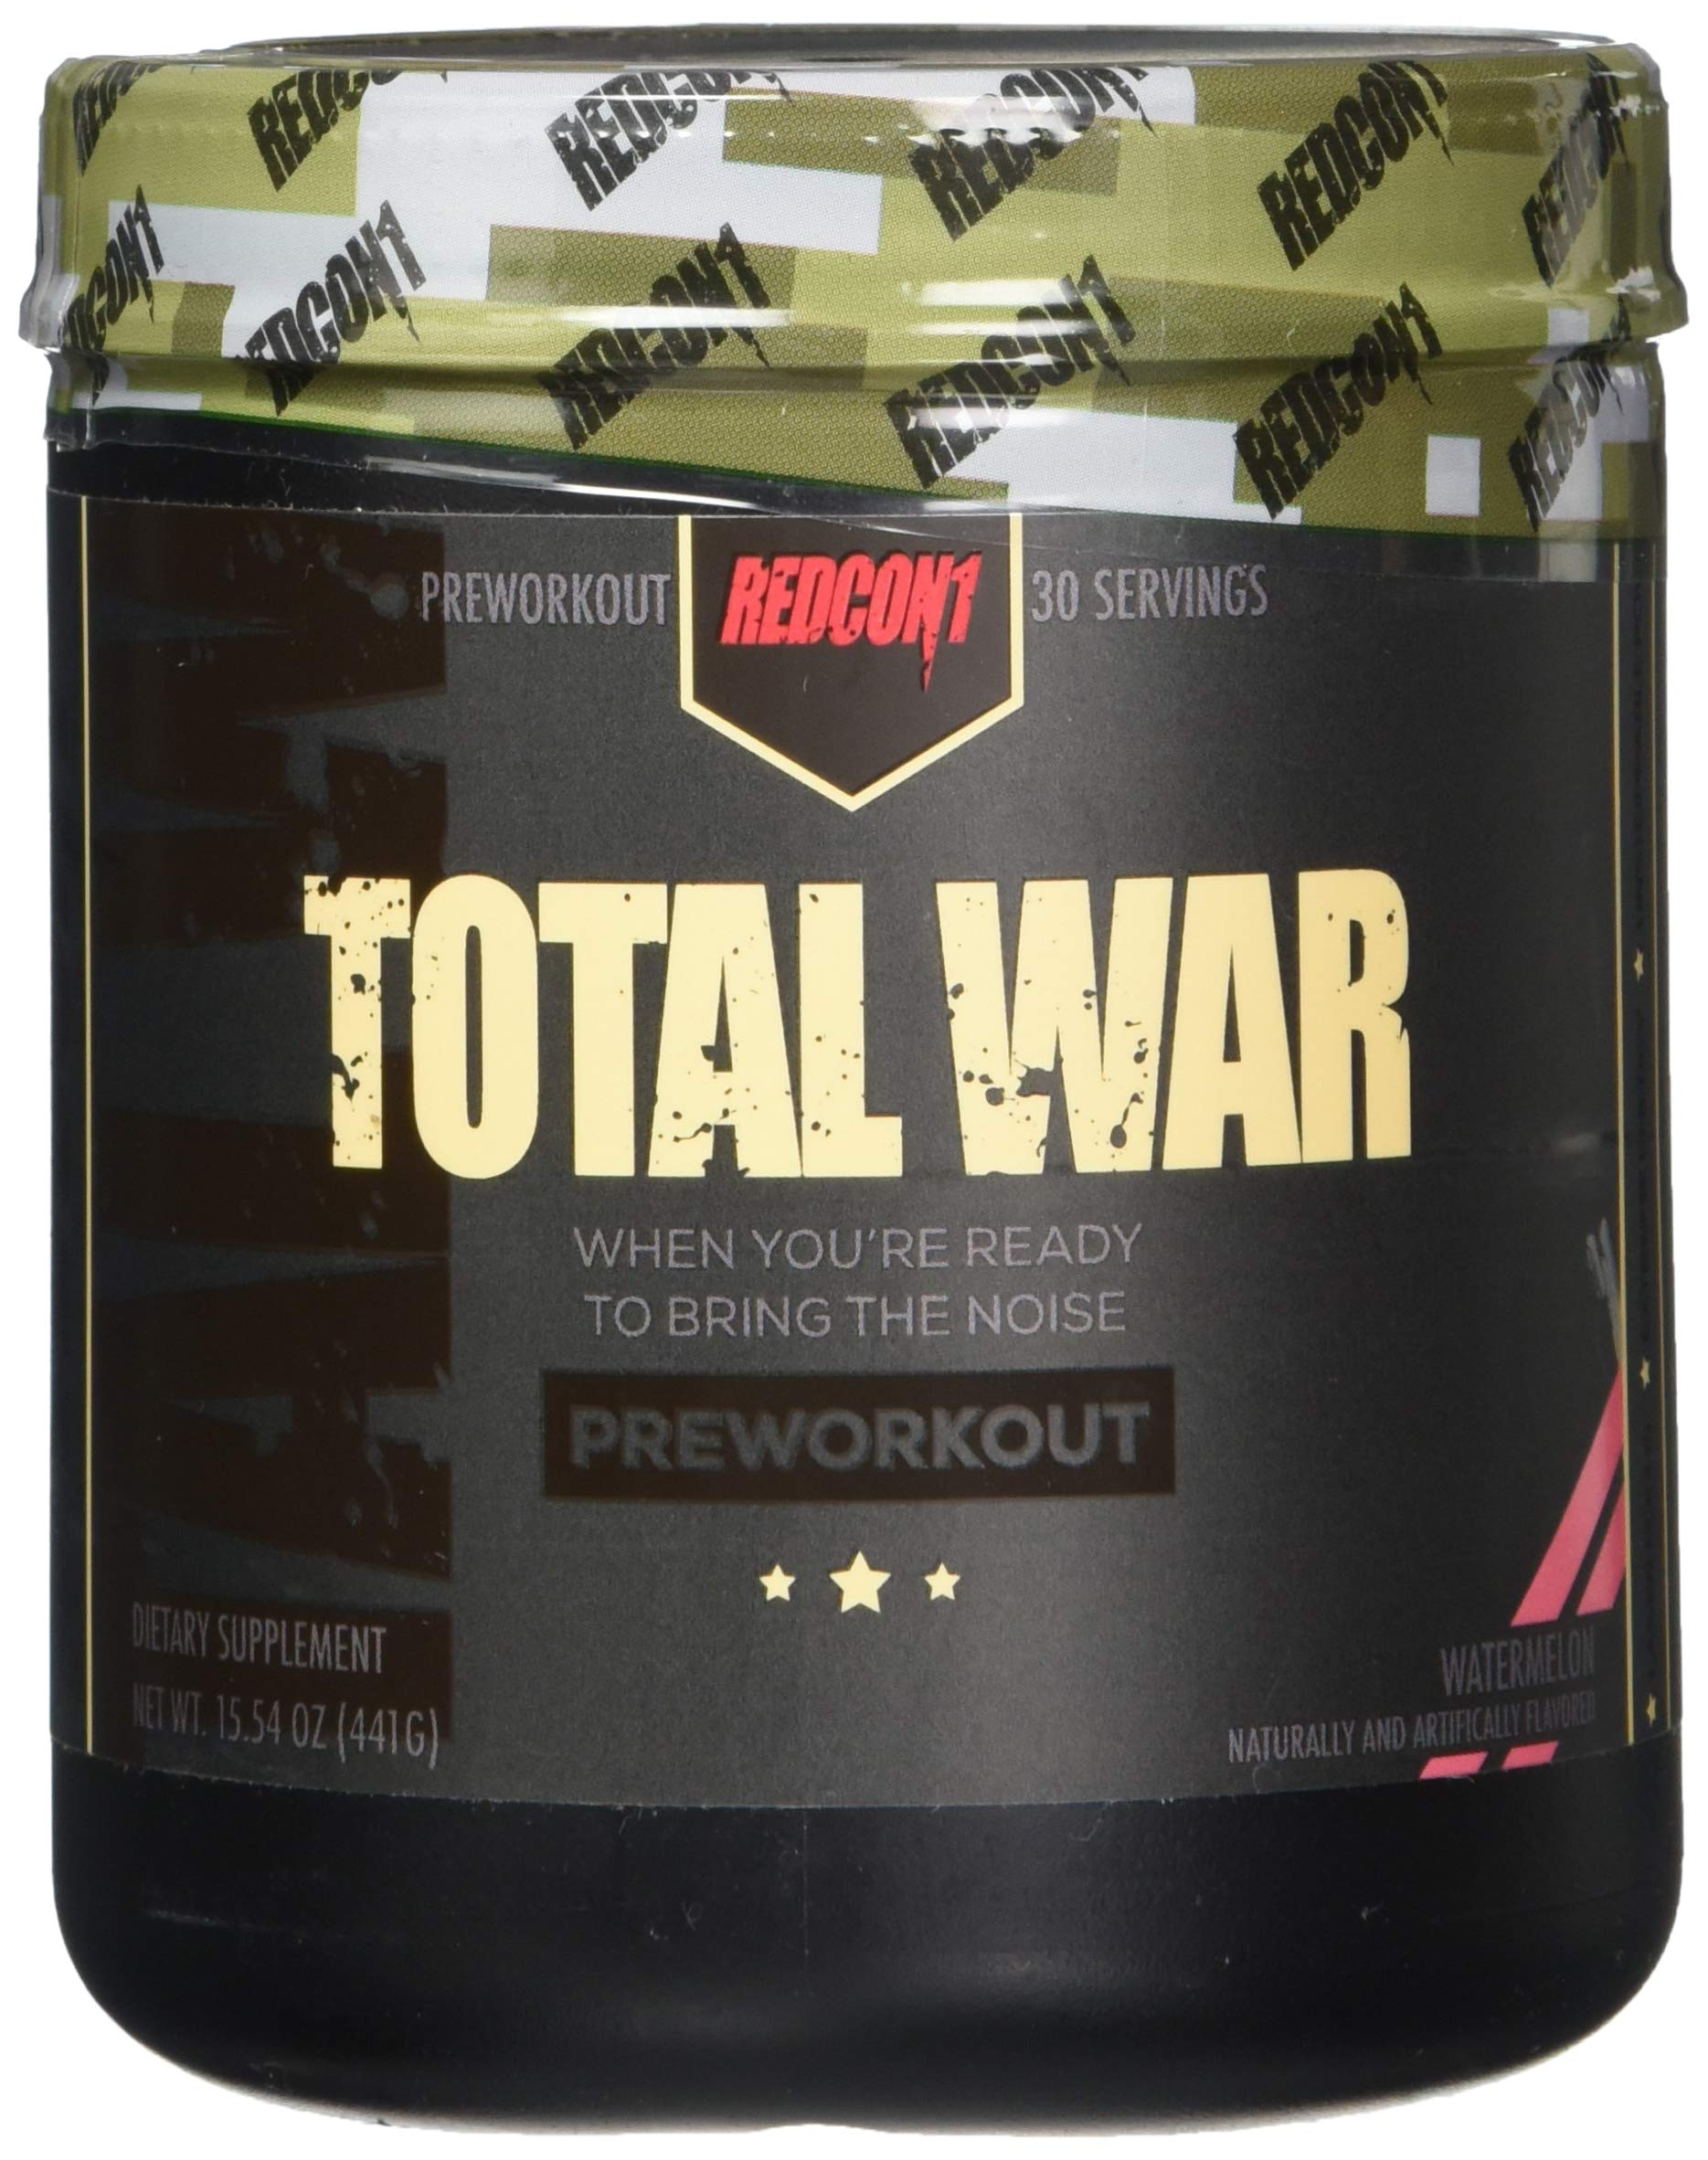 Total War - Pre Workout - 30 Servings - Newly Formulated (Watermelon)